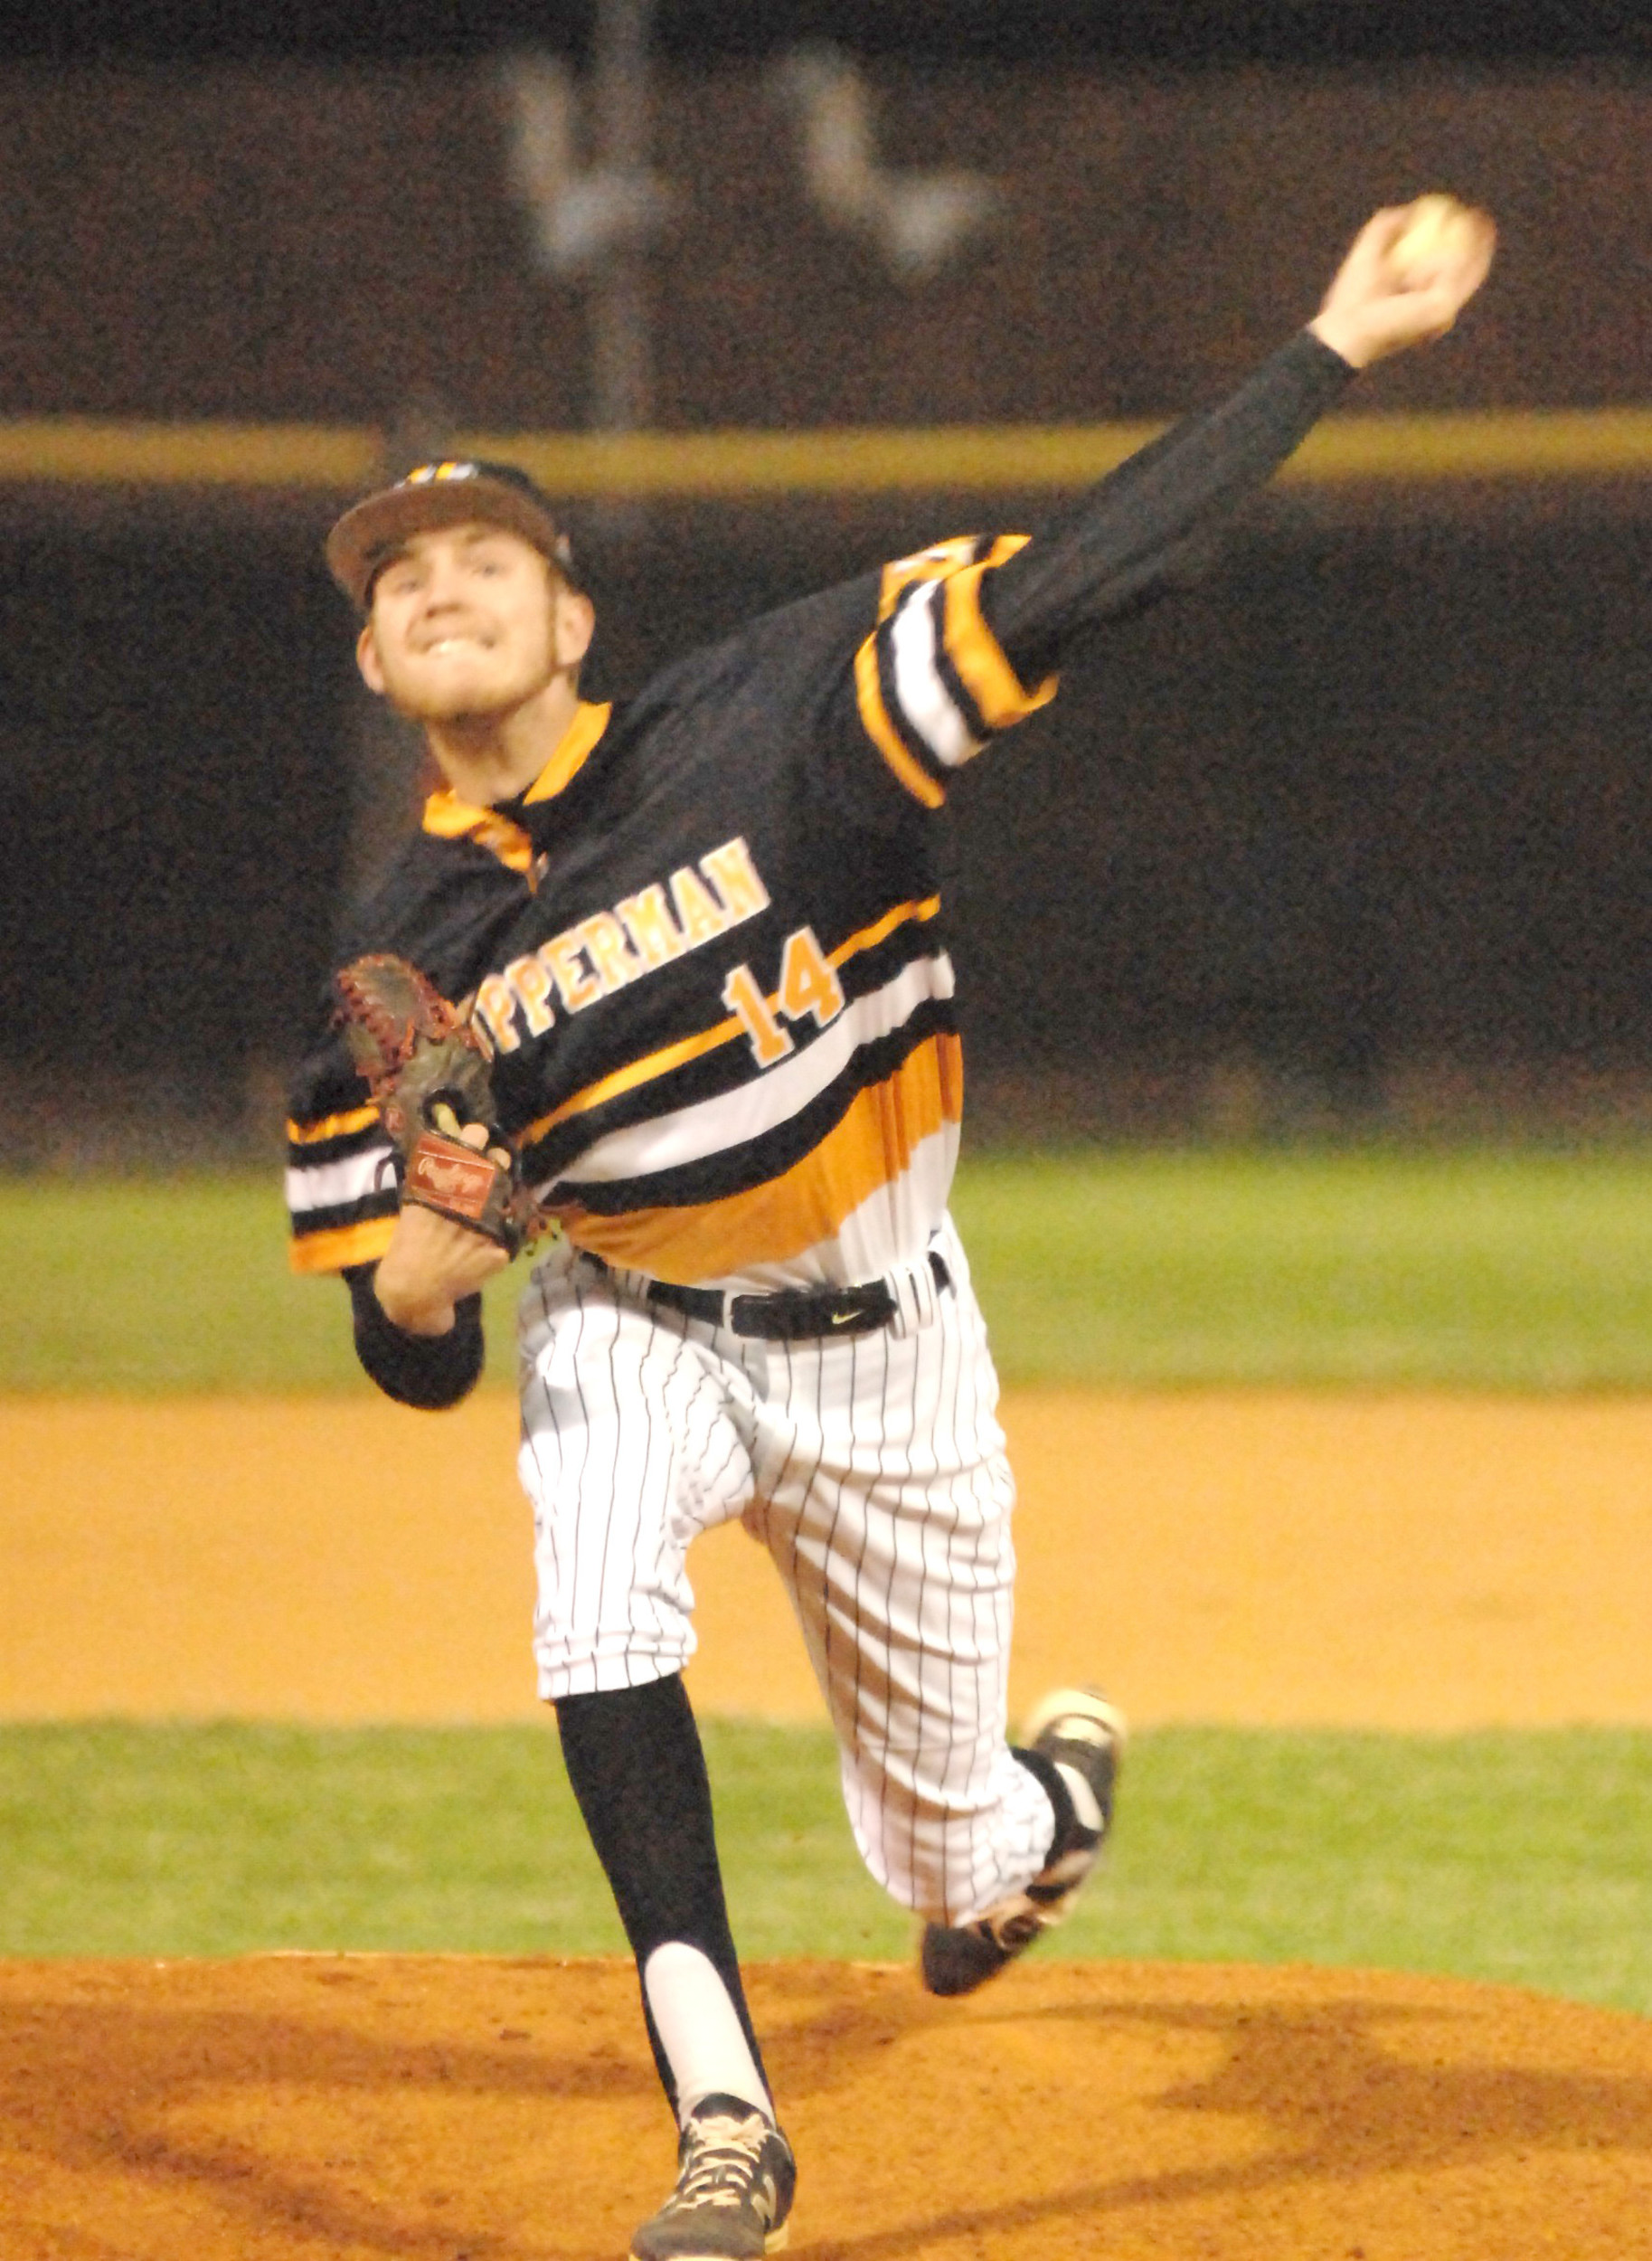 Upperman's Josh Endicott throws to the plate during the Bees' 4-2 win...